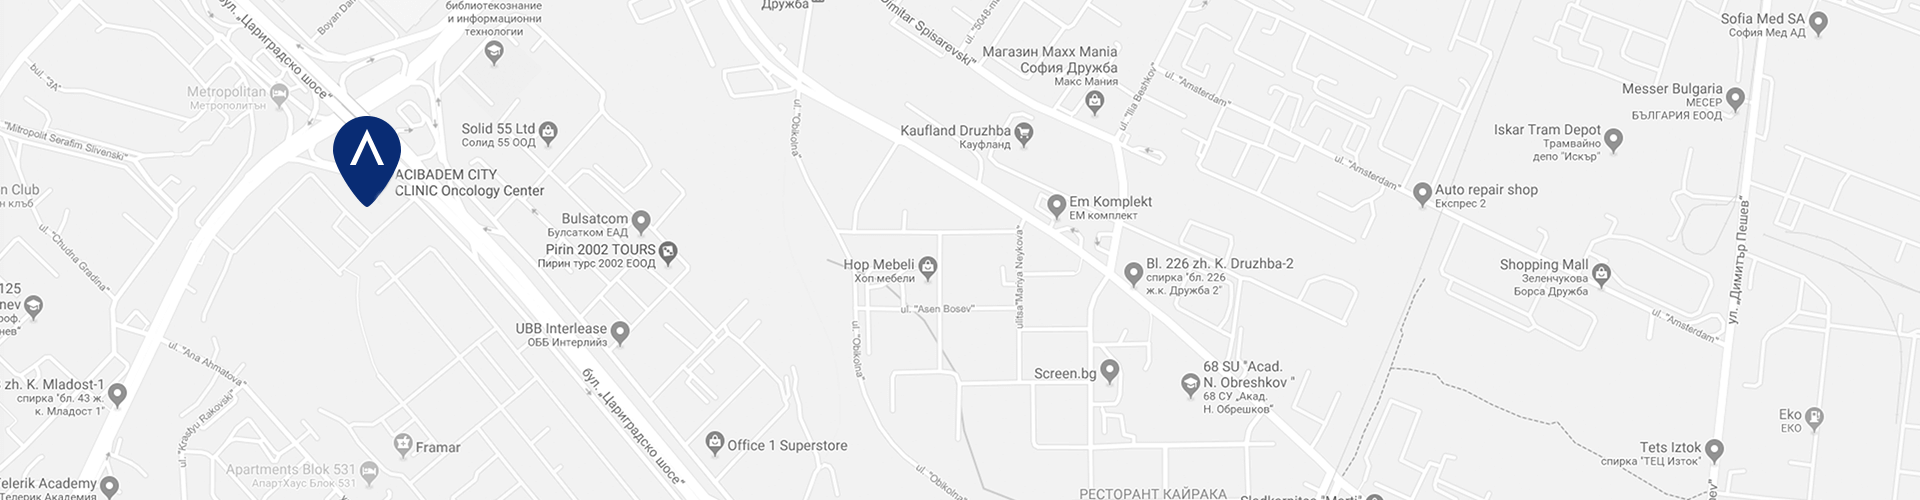 acibadem-city-clinic-cancer-center-google-maps-image.png